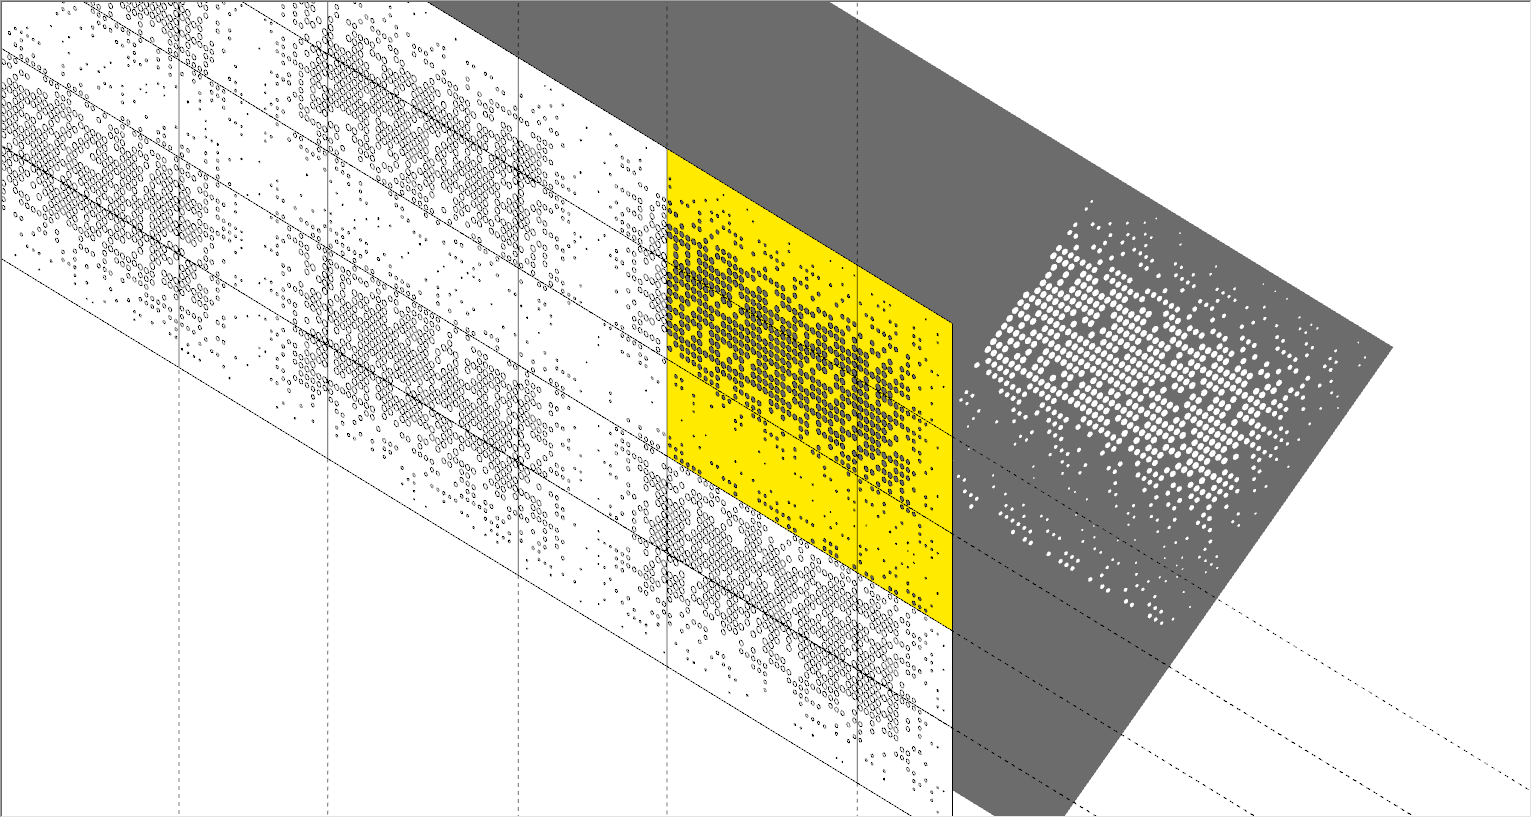 Modeling perforated metal facades in SketchUp - Process